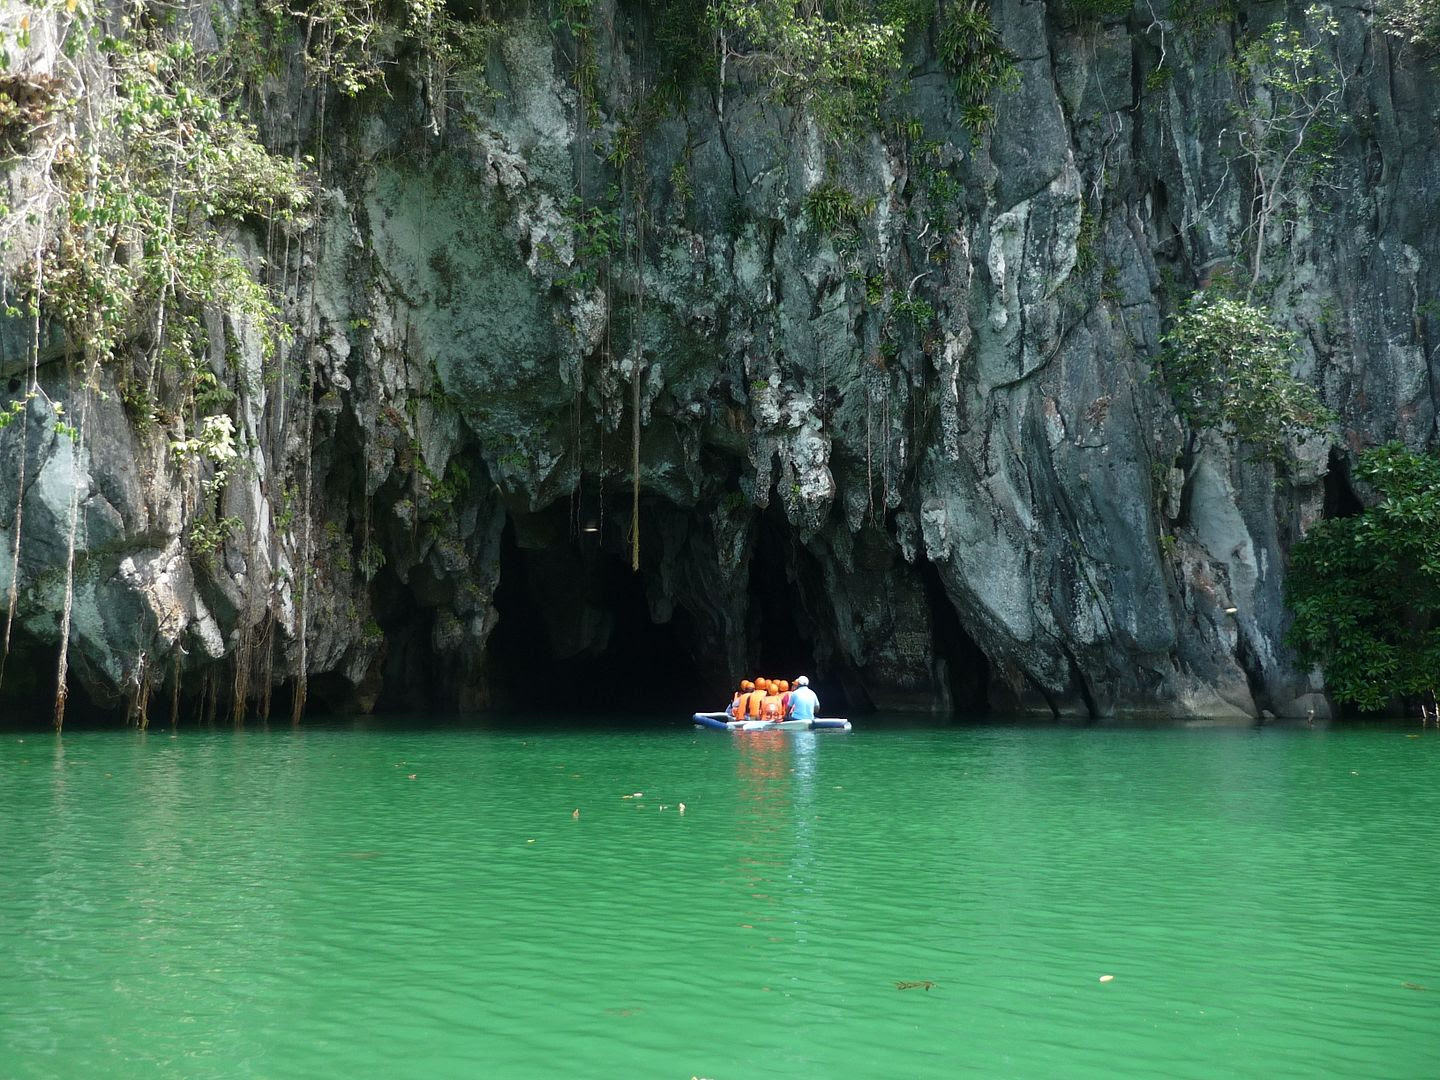 Boating into the Underground River in Puerto Princesa, Palawan, Philippines photo 2014-03-26082415_zpseab2d352.jpg